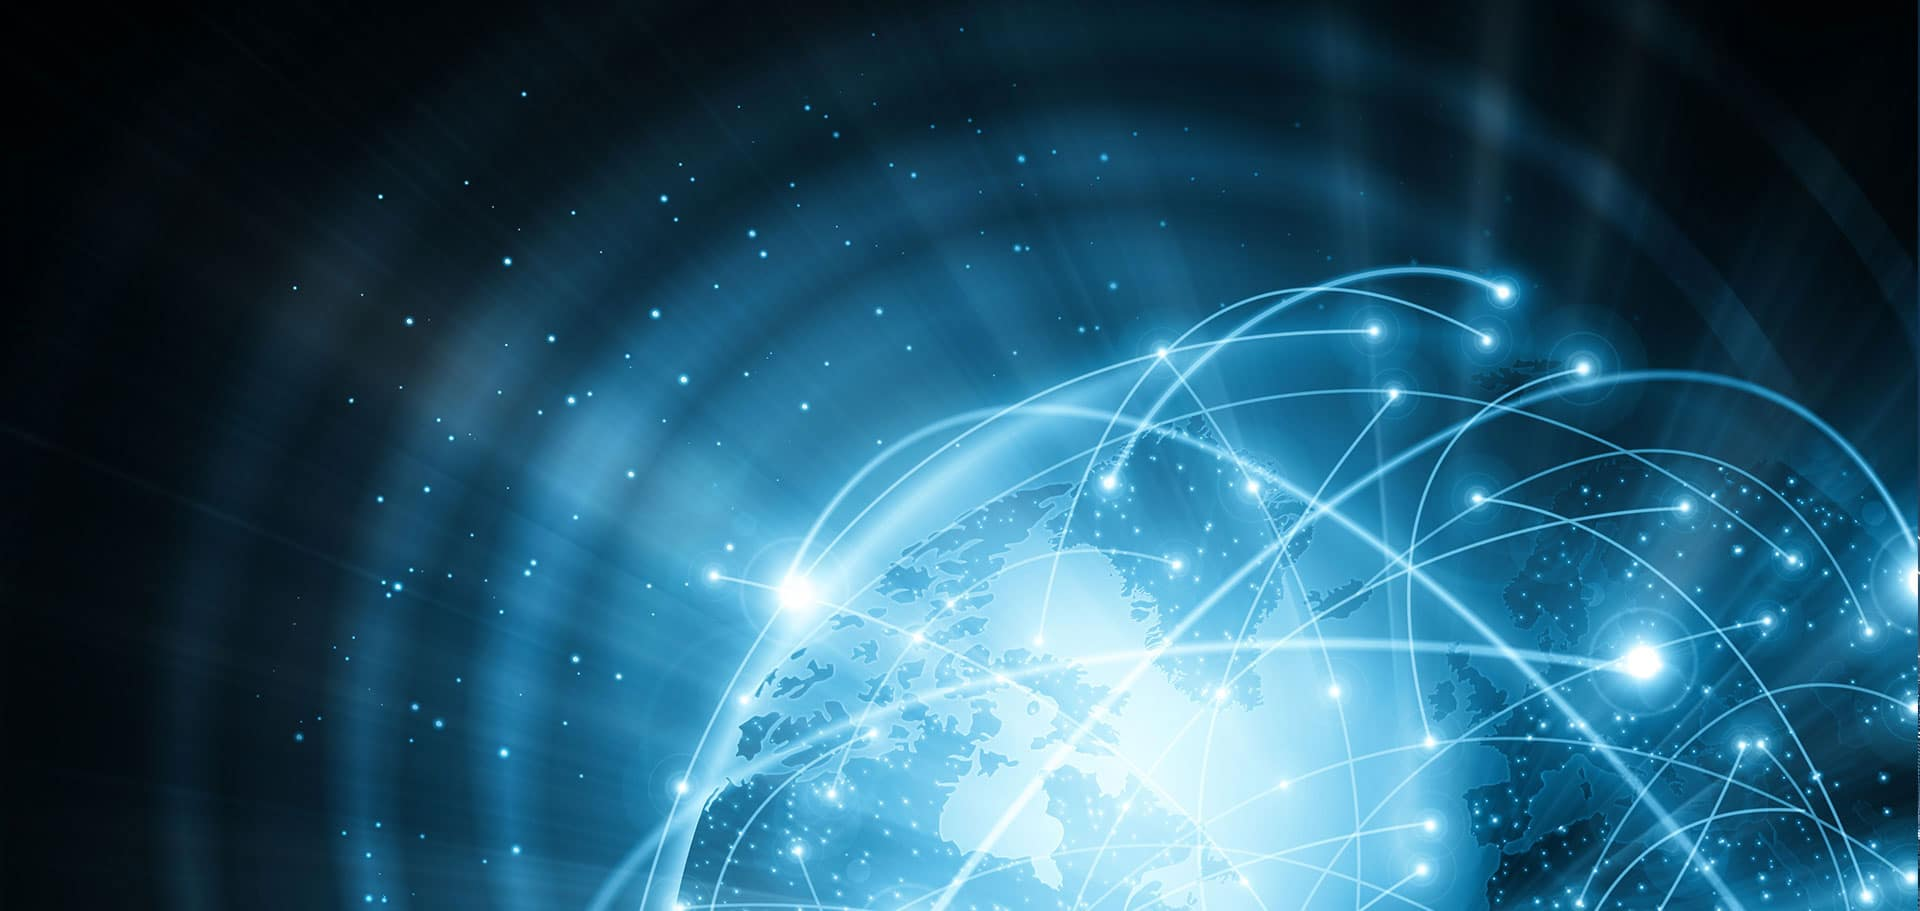 Free Internet access must be considered as a human right